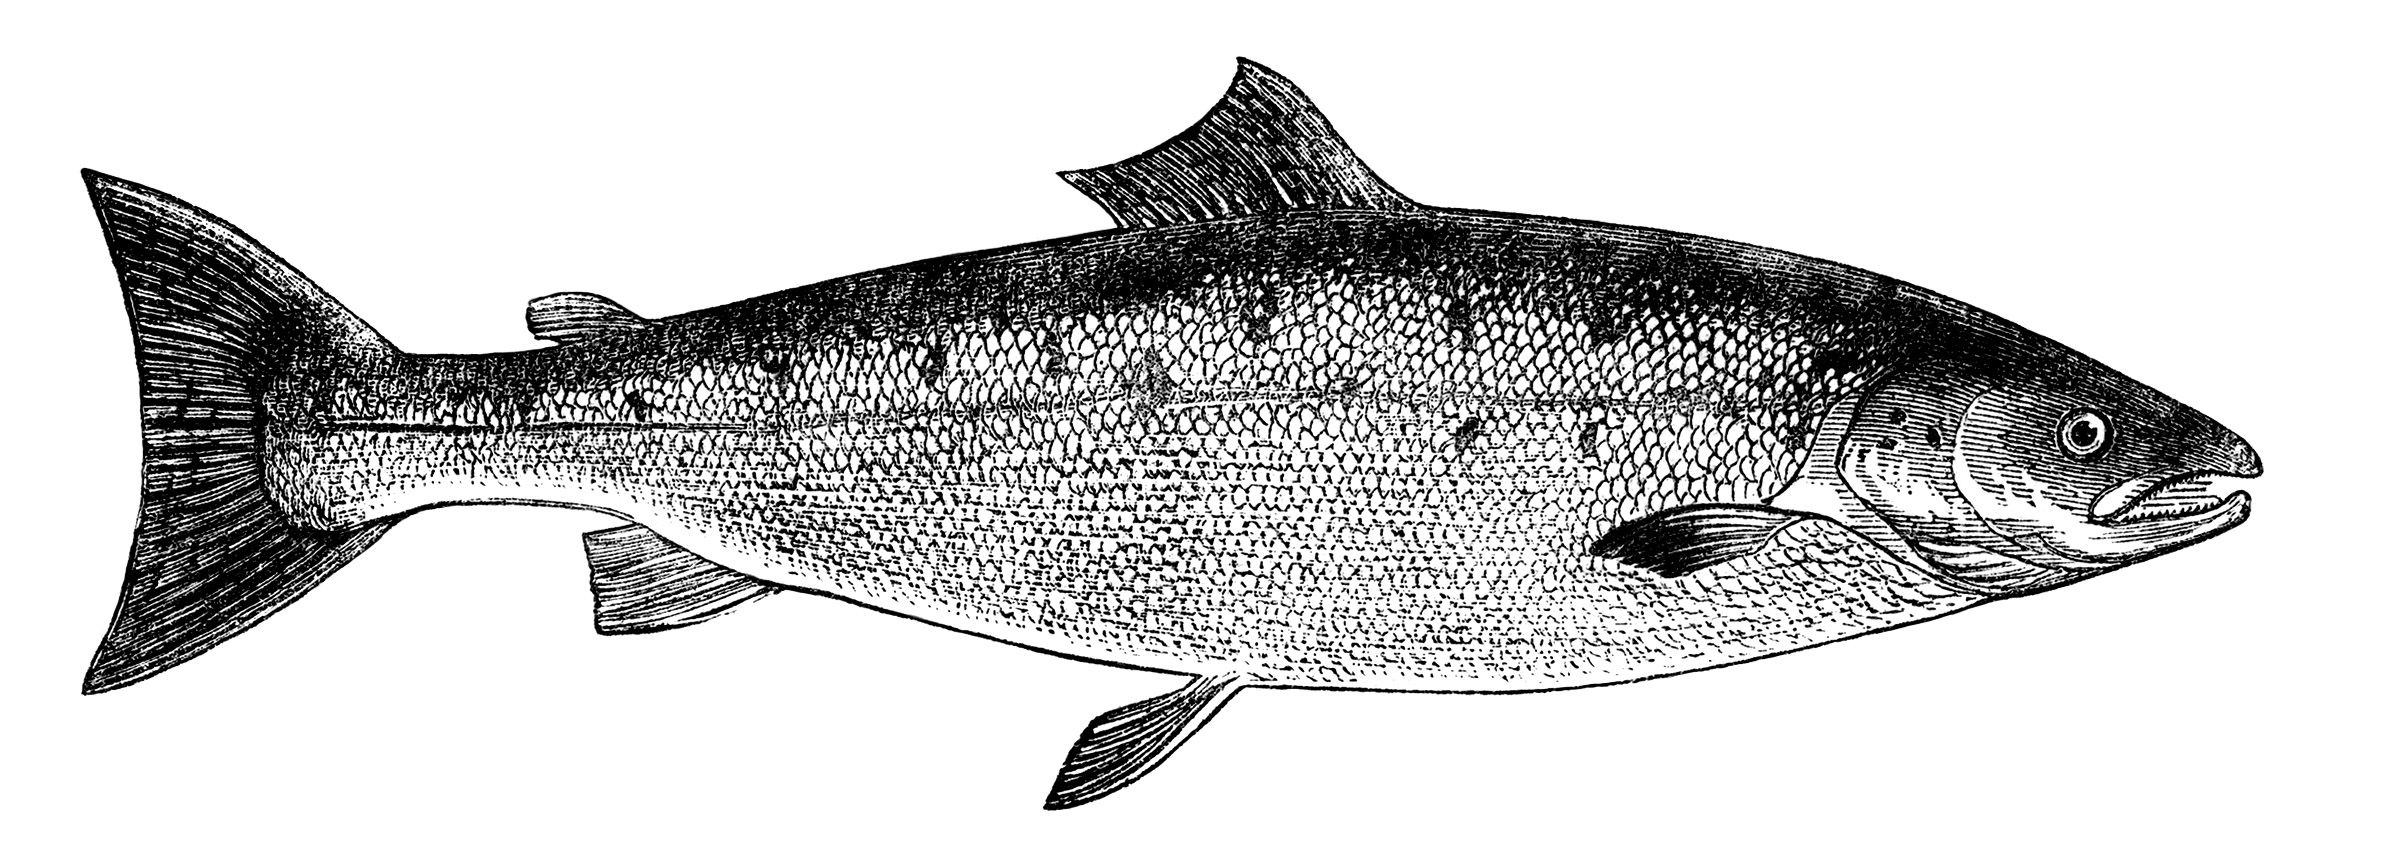 black and white clip art, vintage fish clipart, salmon image.